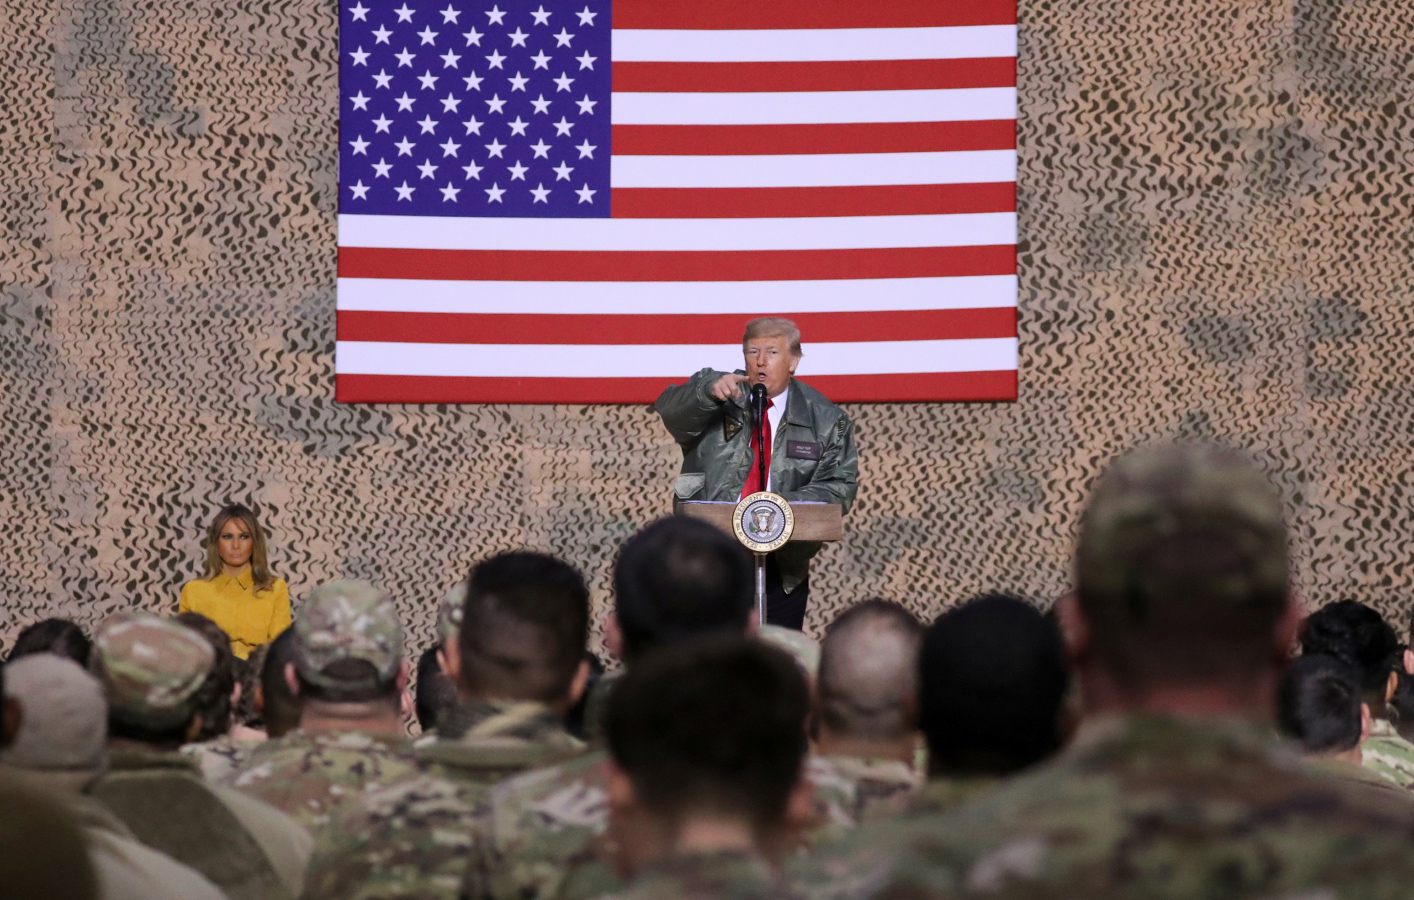 Why United States would not be able to pull troops from Syria